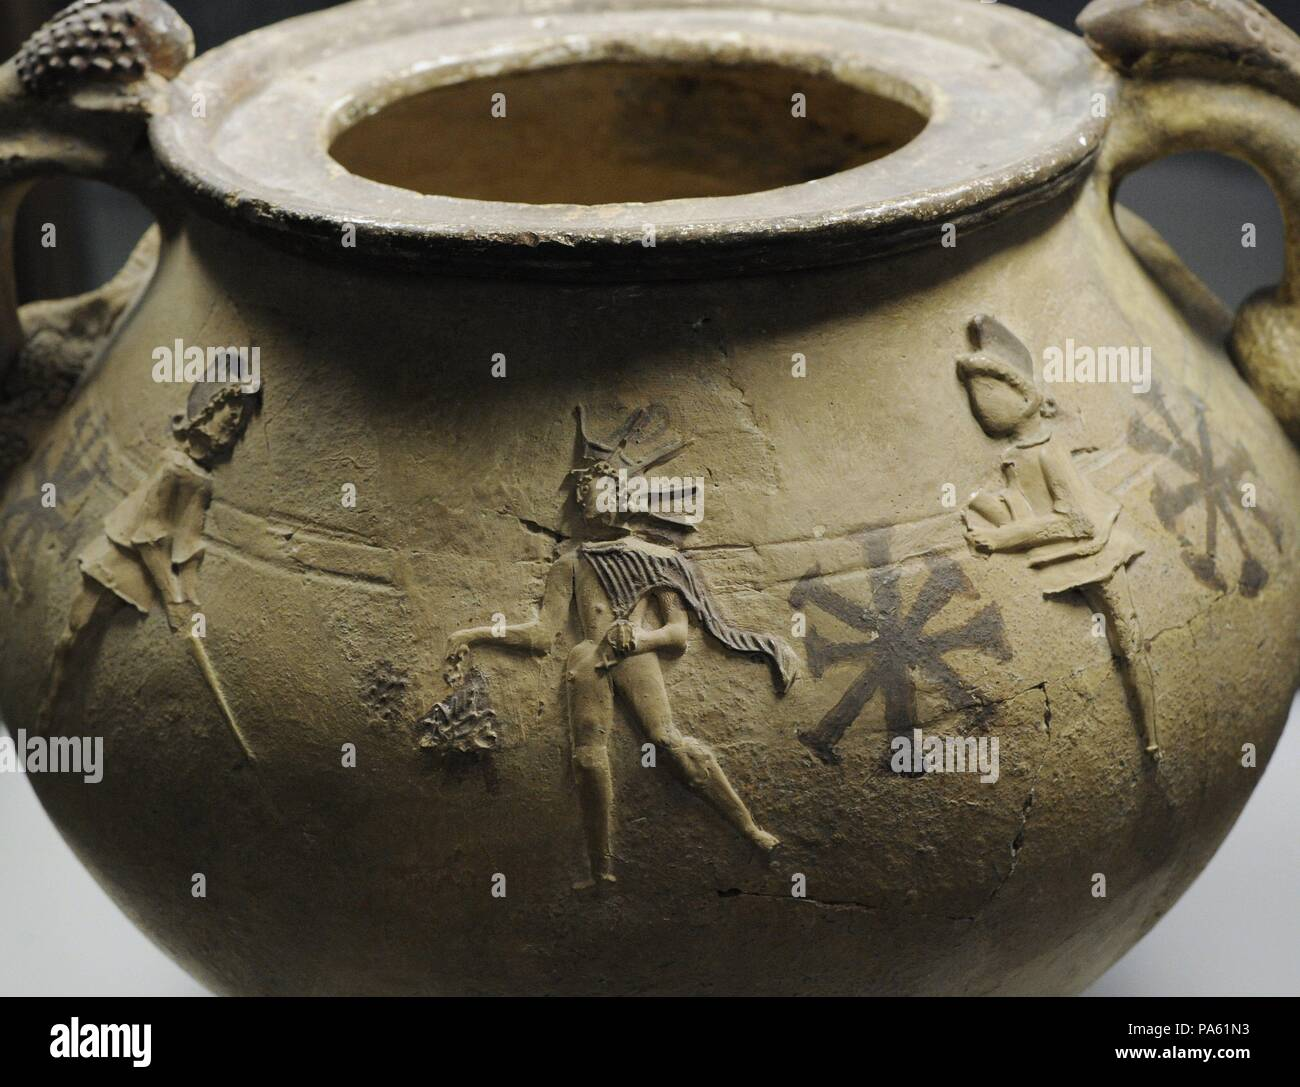 Pottery depicting Mithras surrounded by the torch-bearers Cautes and Cautopates. 2nd-3rd centuries. From Cologne, Germany. Roman-Germanic Museum. Cologne. Germany. - Stock Image